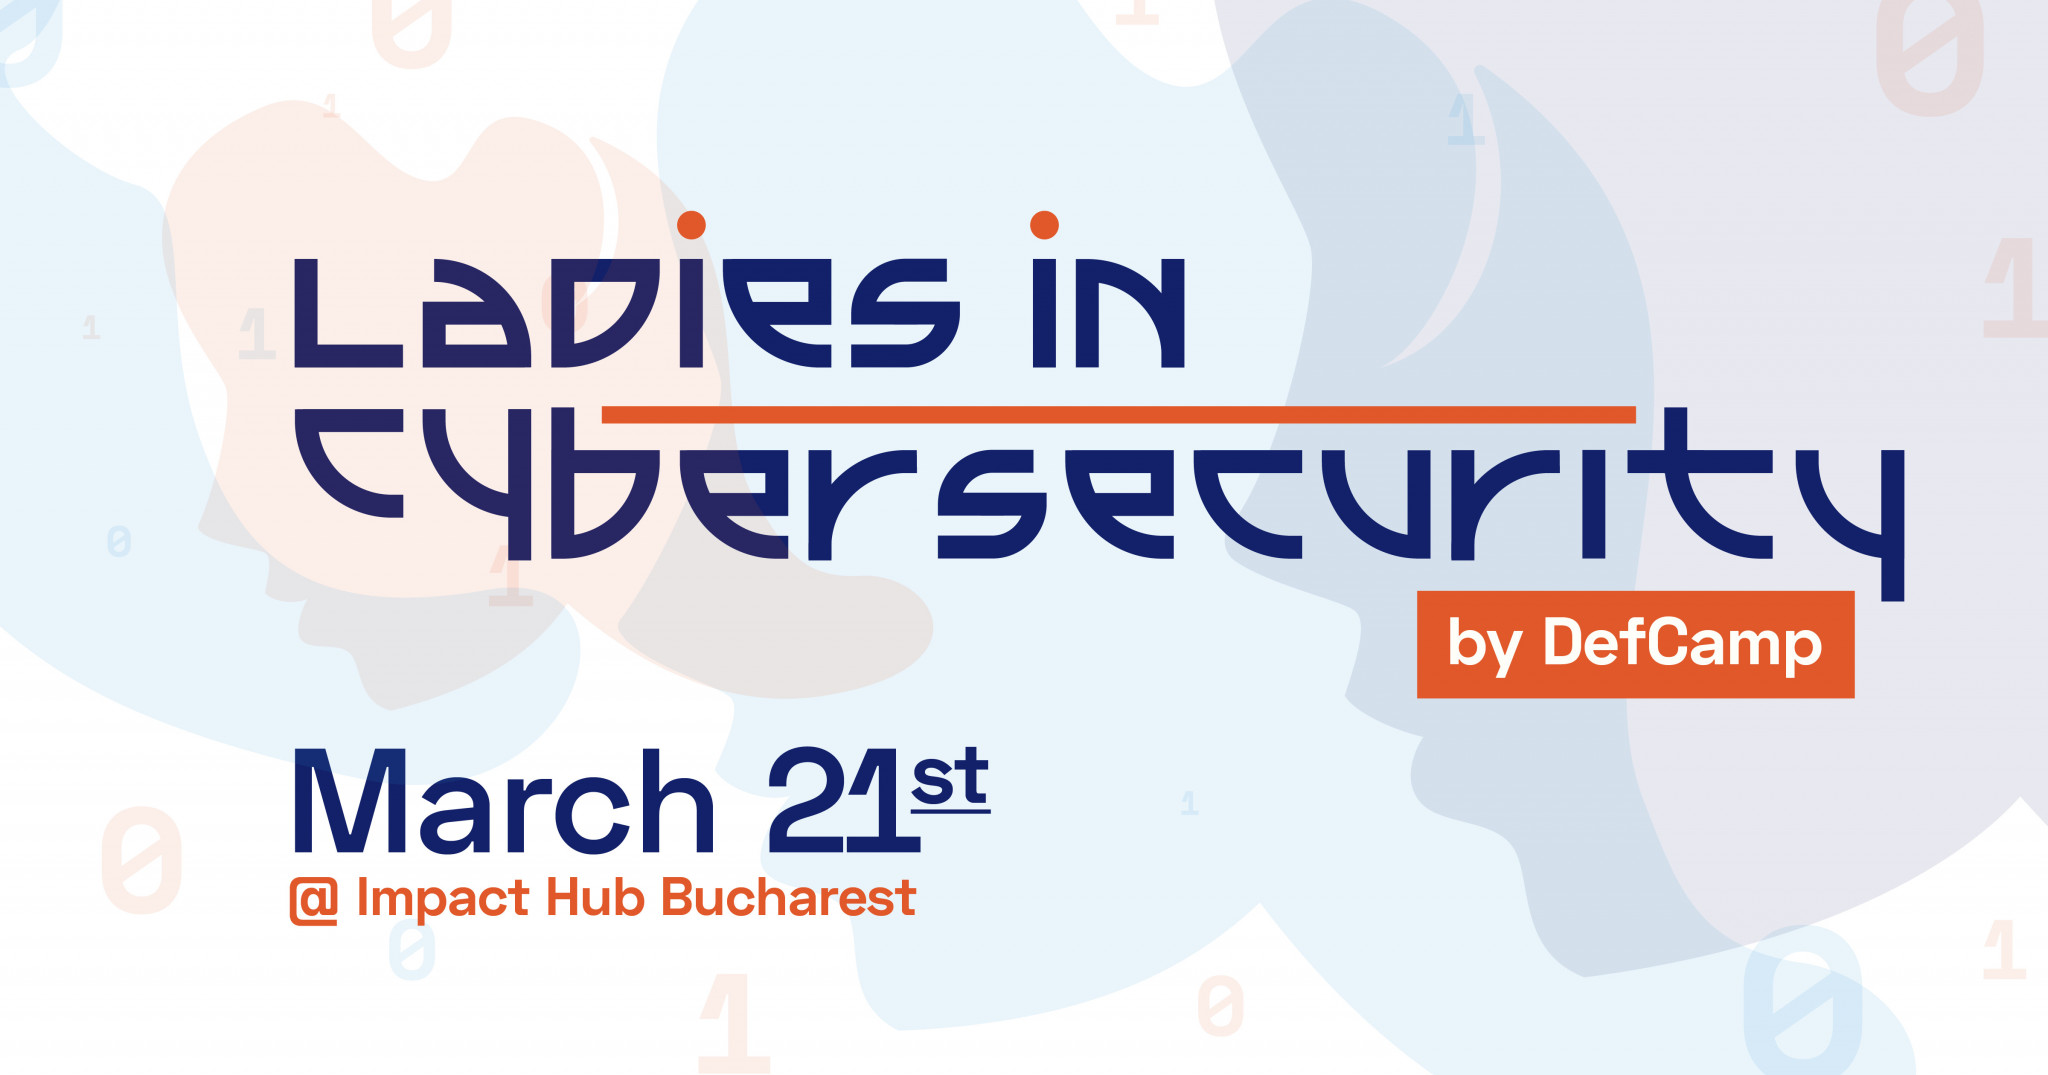 Ladies in CyberSecurity